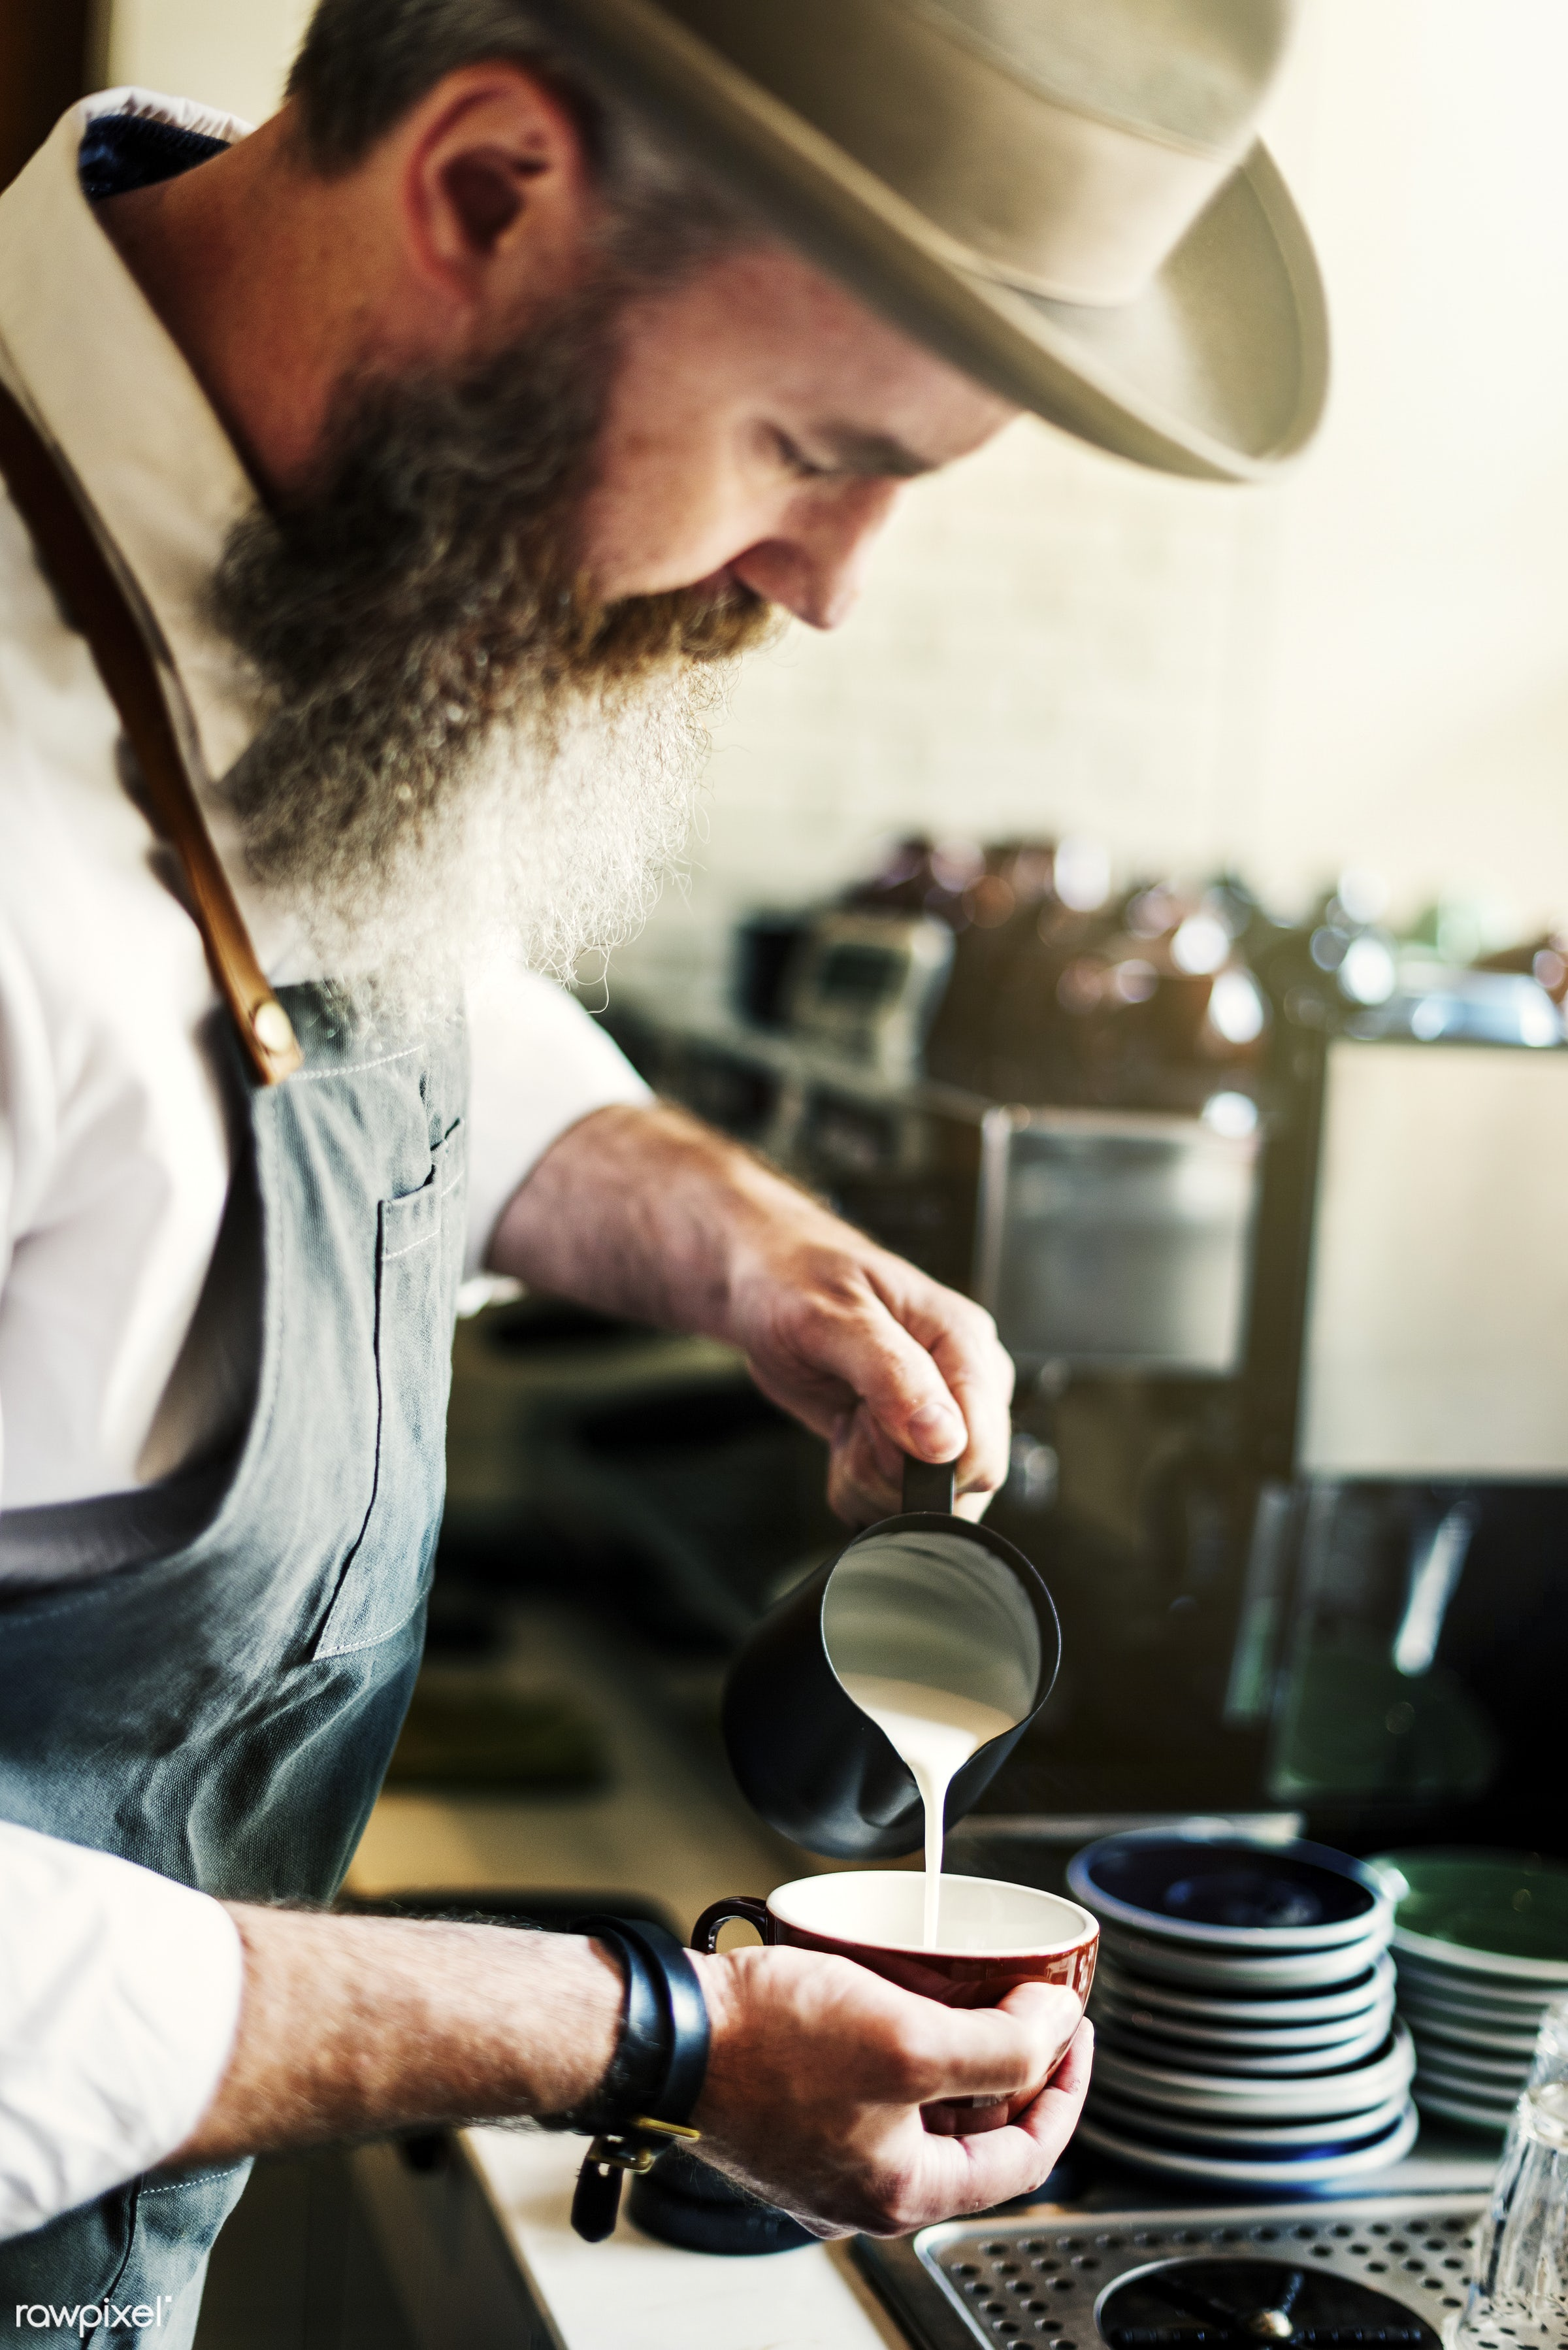 apron, barista, business, cafe, coffee, coffee mill, coffee shop, cup, day, drink, employee, employer, hand, holding,...